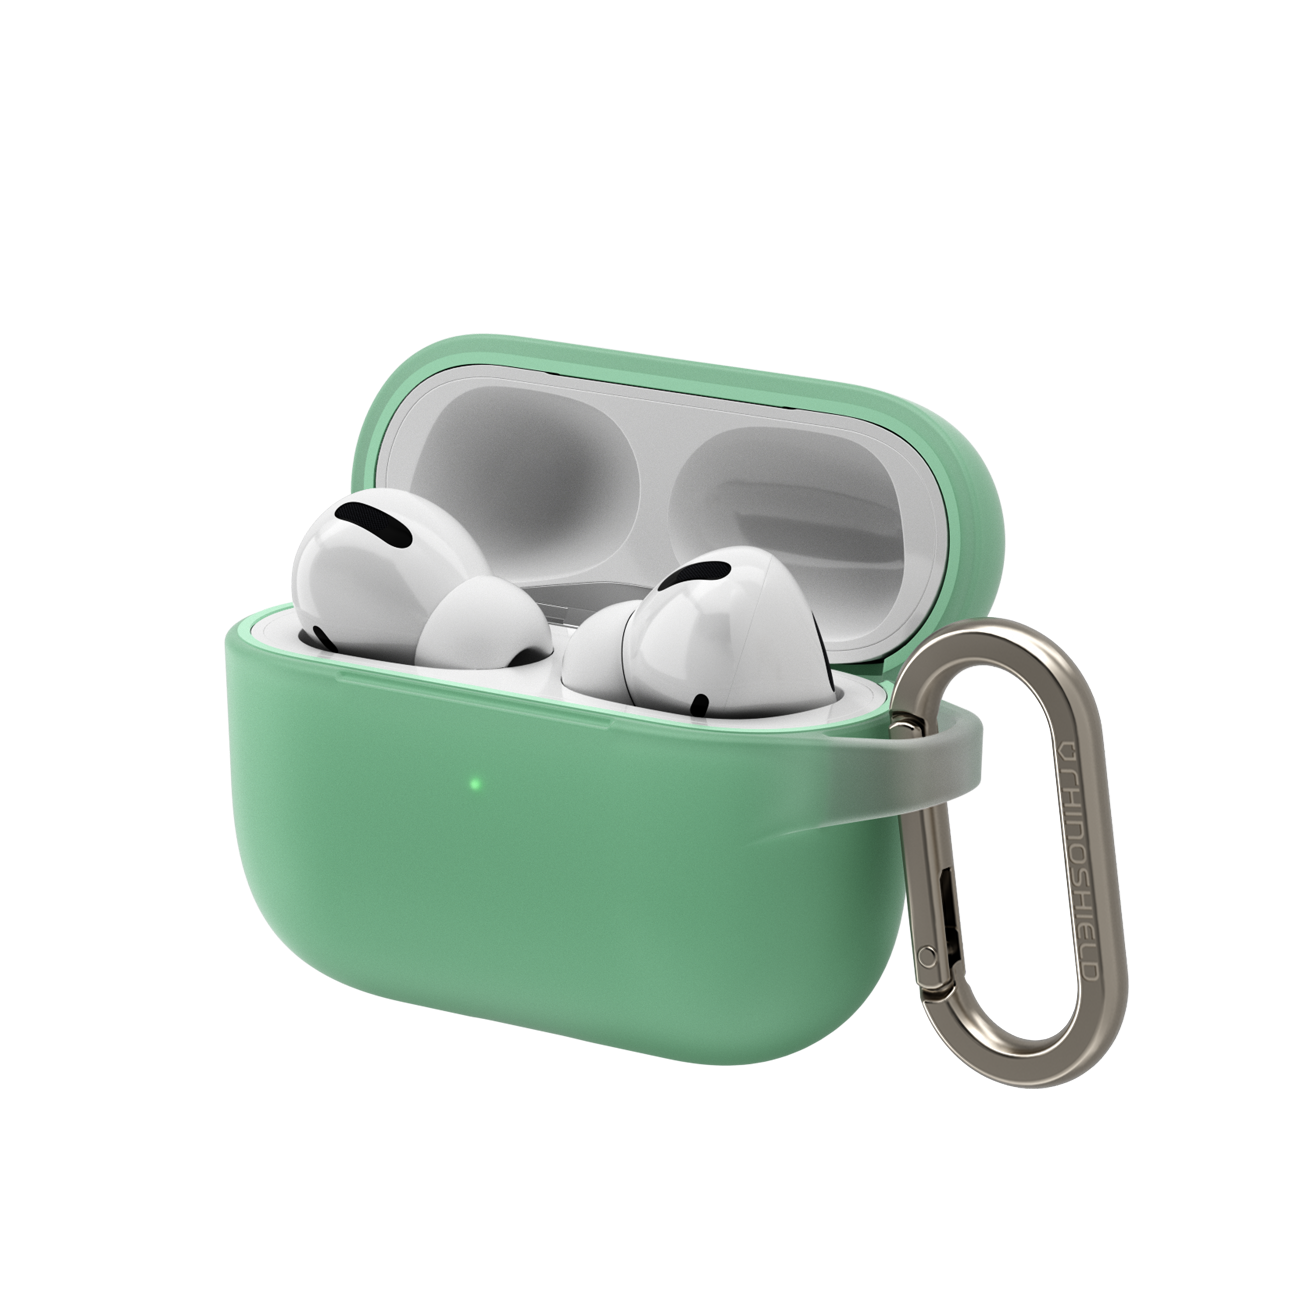 RhinoShield Impact Resistant Case For AirPods Pro - Mint Green